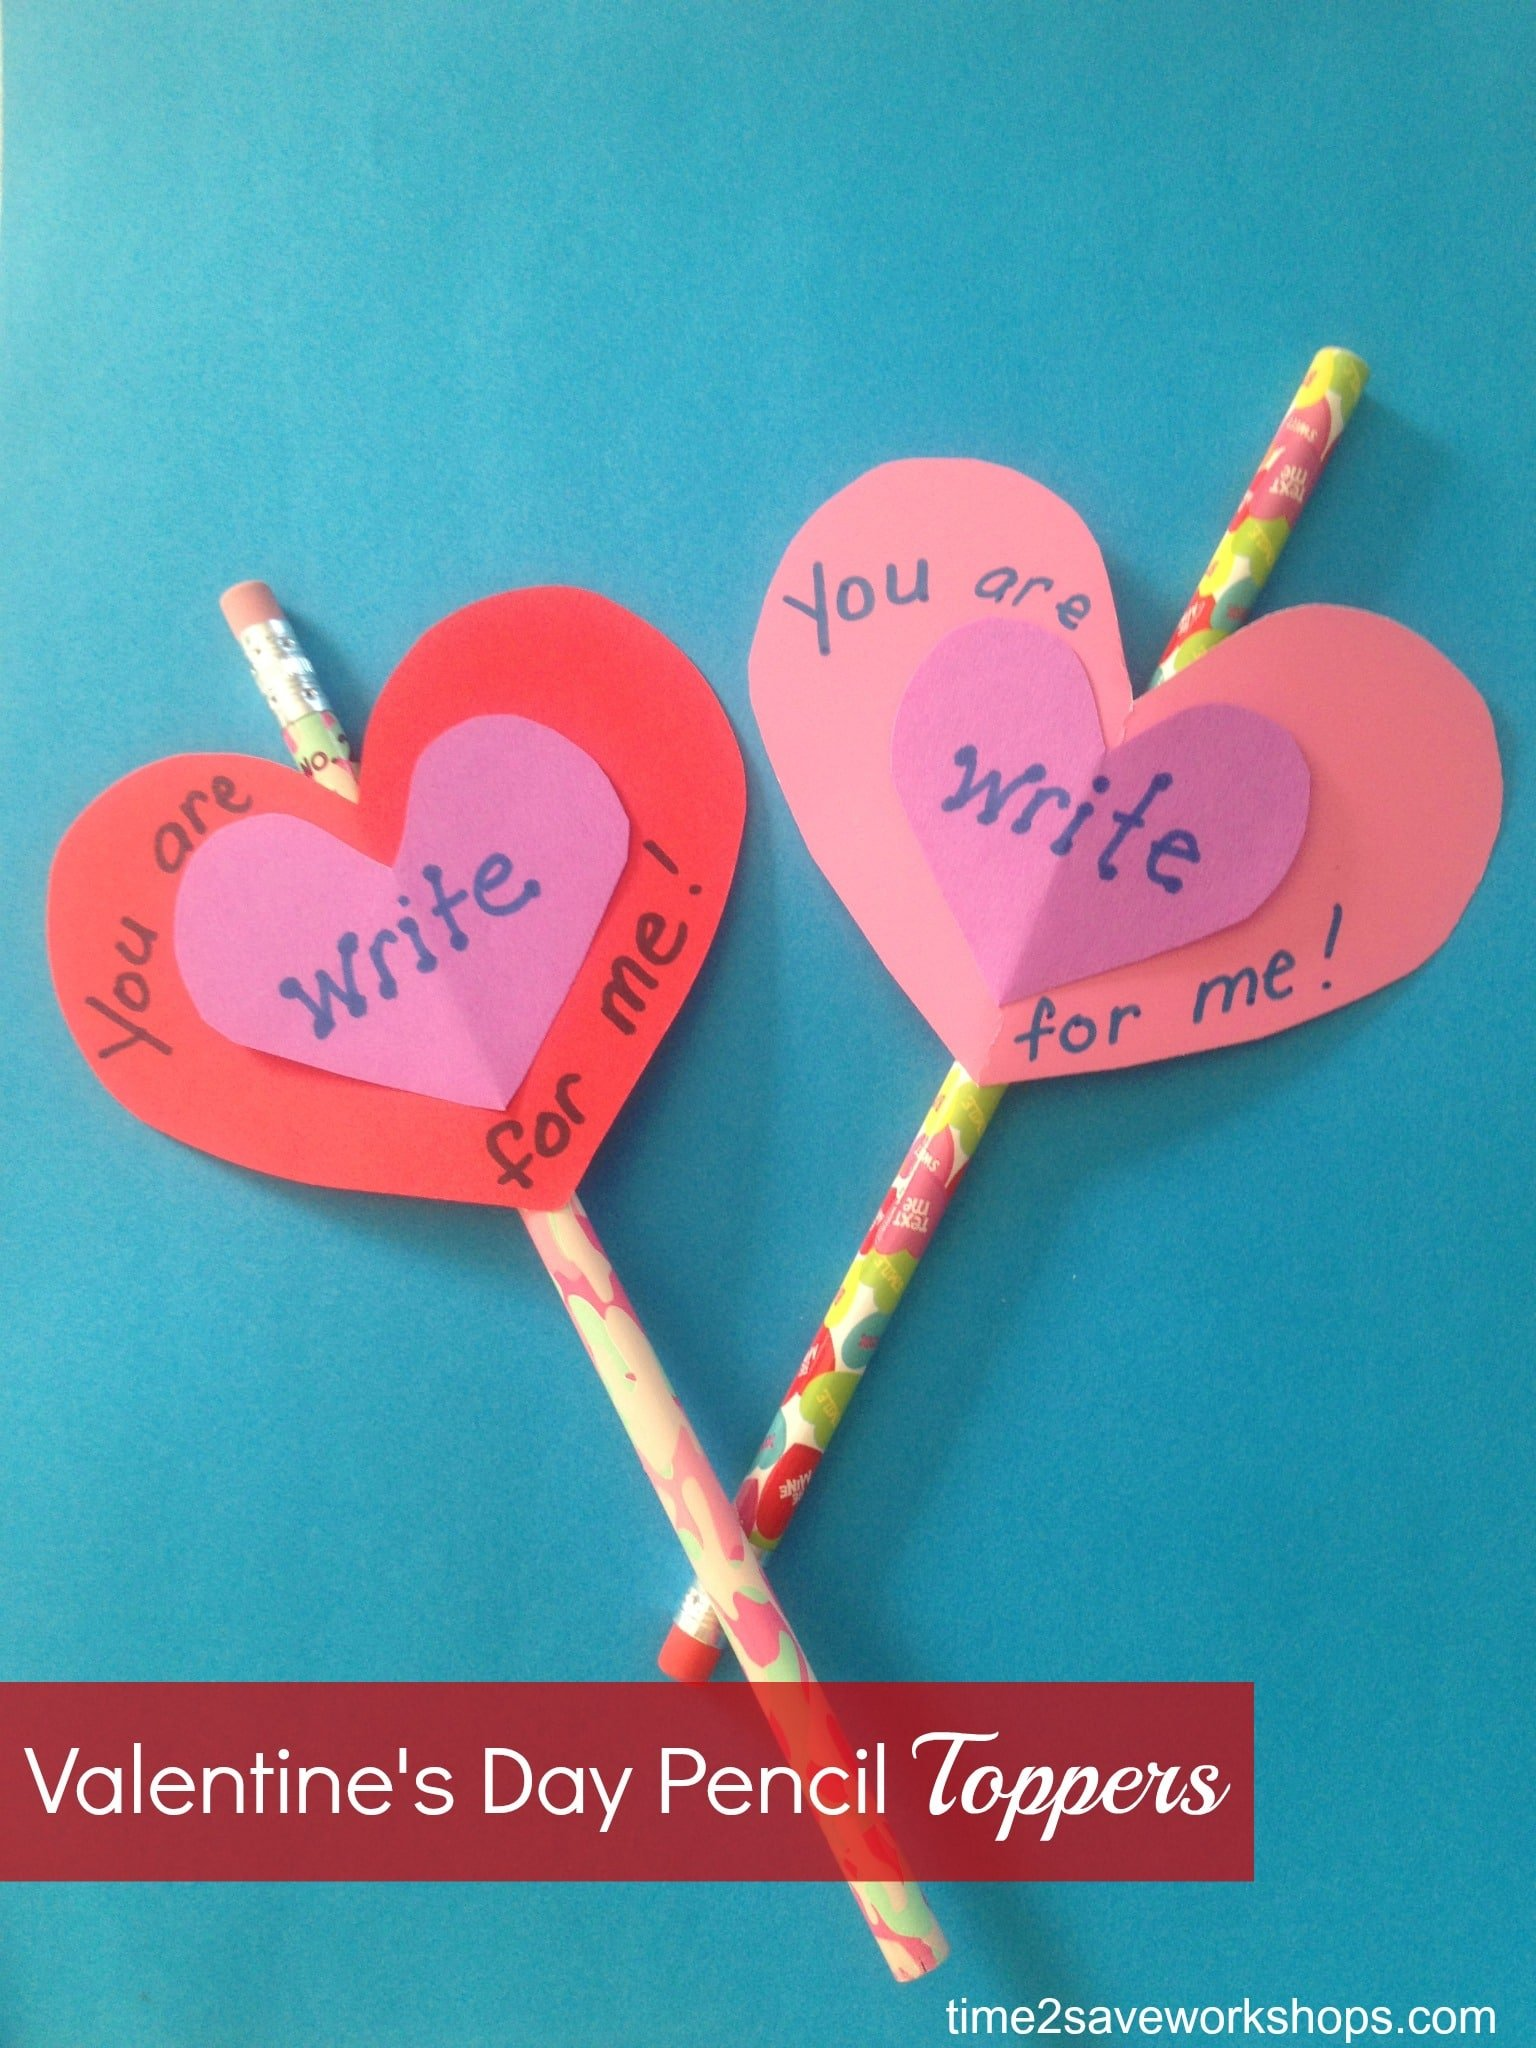 Homemade valentine ideas diy valentine 39 s day pencil for What is the best gift for valentine